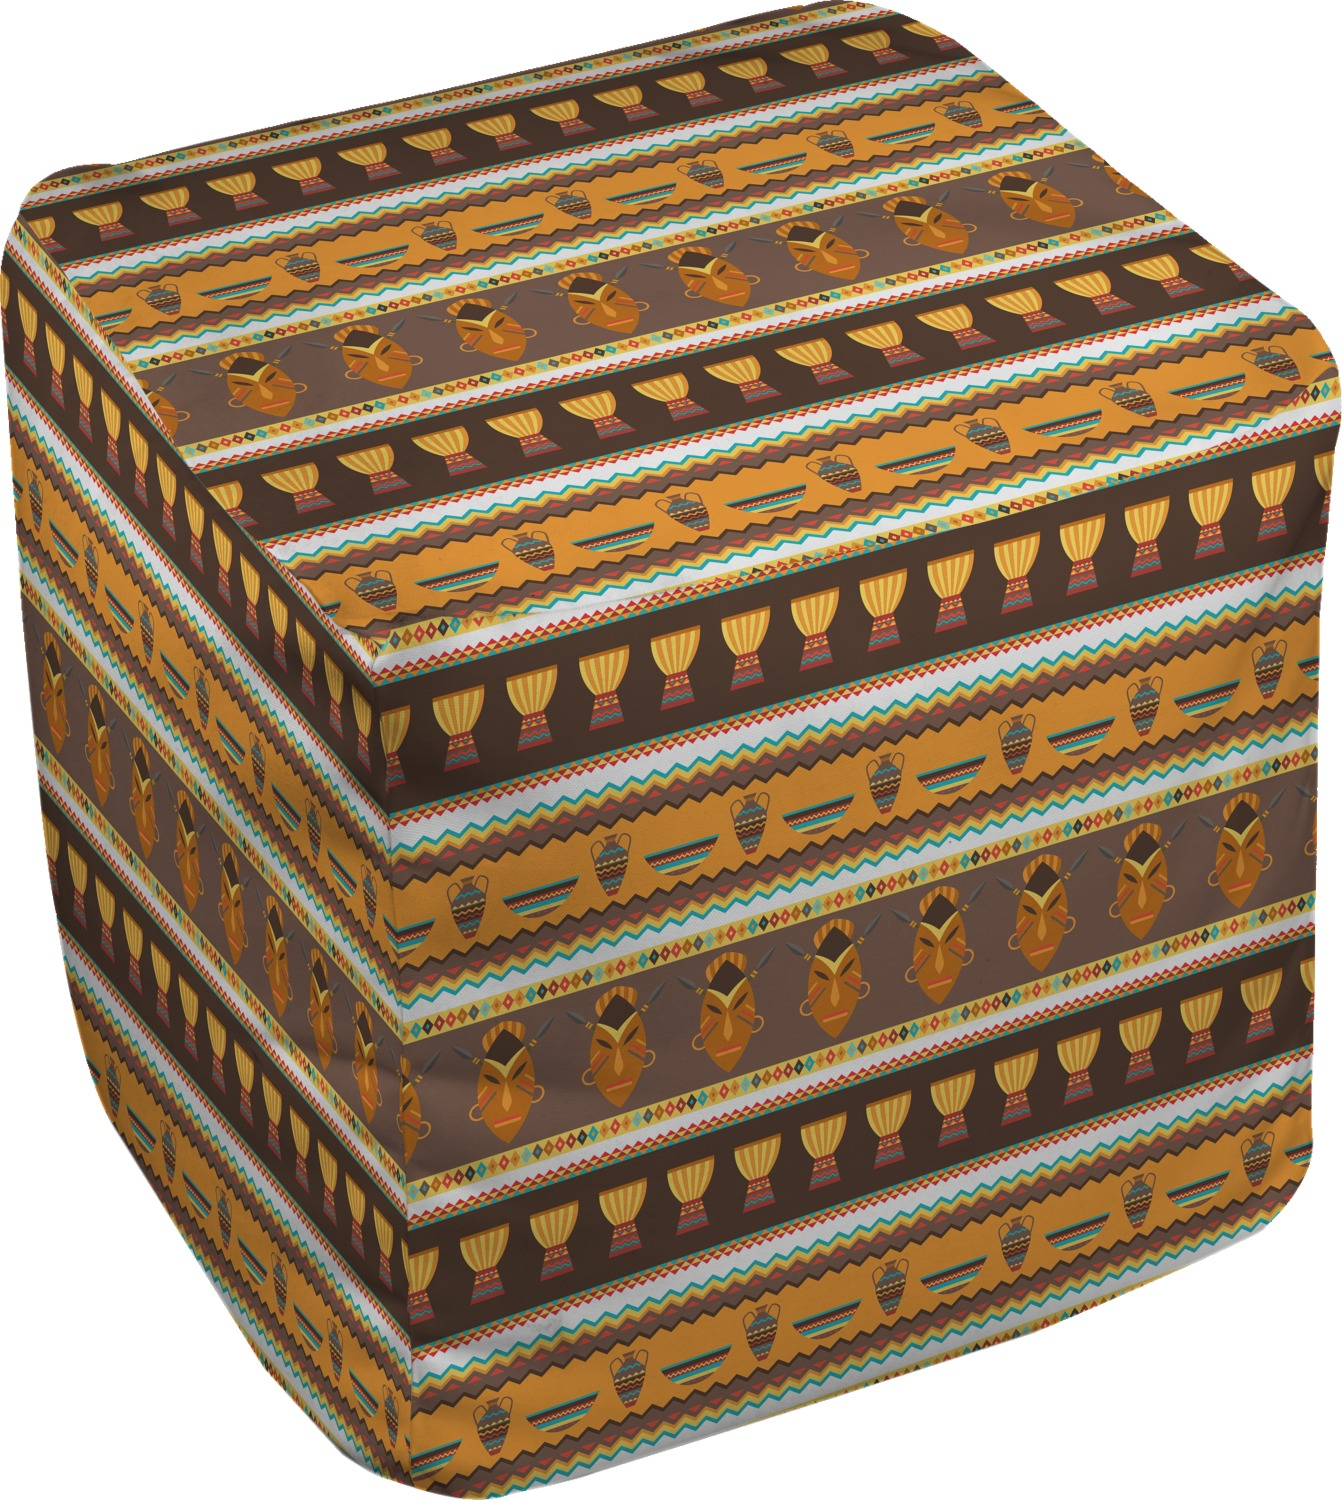 african masks cube pouf ottoman 13 you customize it. Black Bedroom Furniture Sets. Home Design Ideas